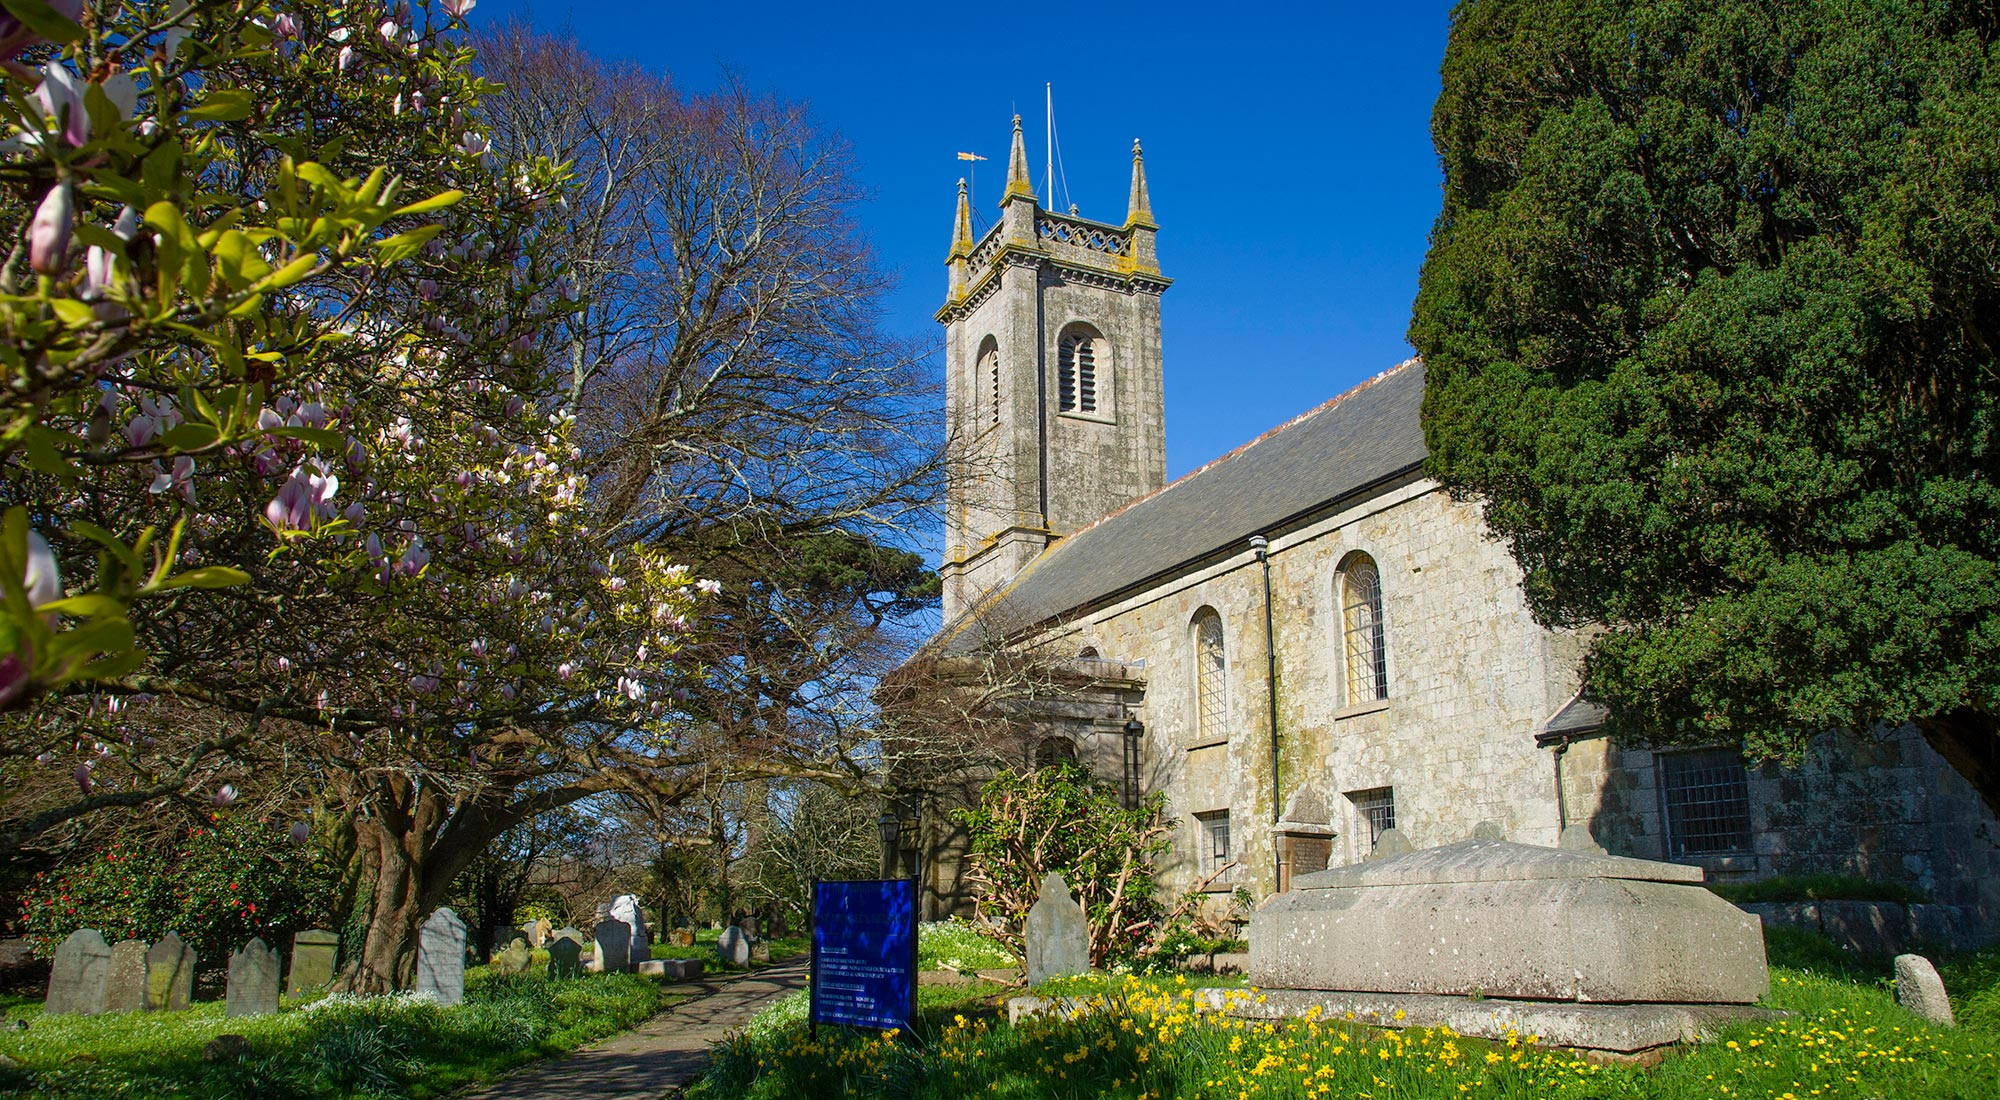 St Michael's Church and Churchyard in Helston